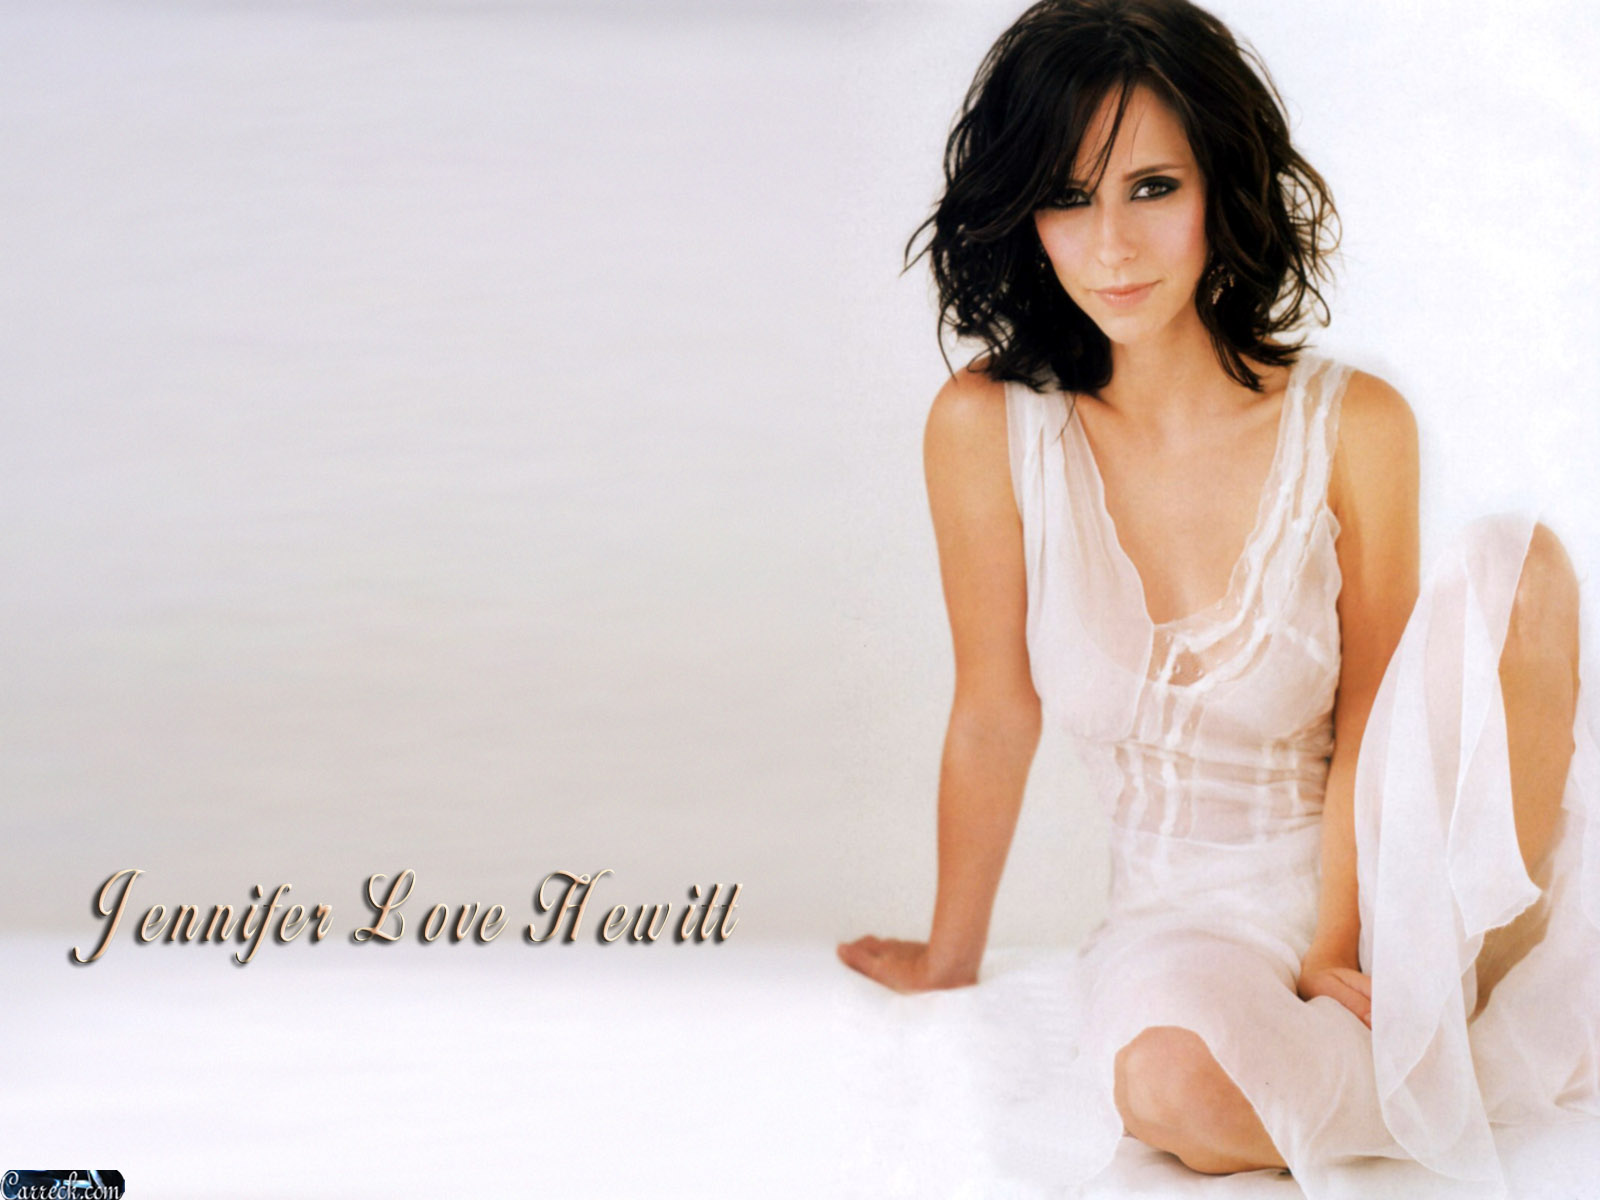 Wallpaper Hd Jennifer Love : Jennifer Love Hewitt Wallpaper Widescreen - WallpaperSafari